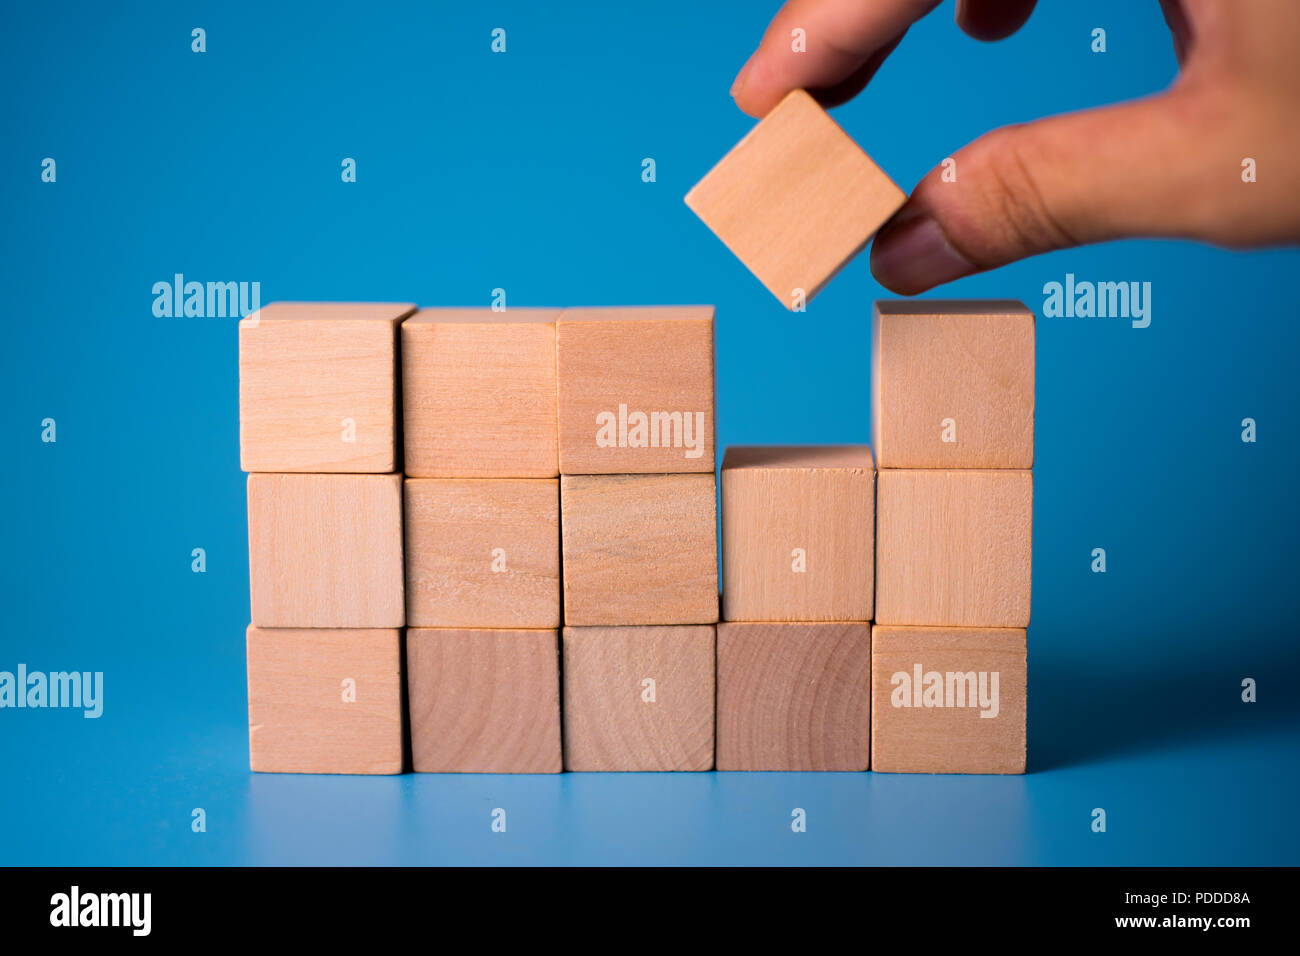 Hand Fill Square Wood Block Into Empty Space Business Concept Of